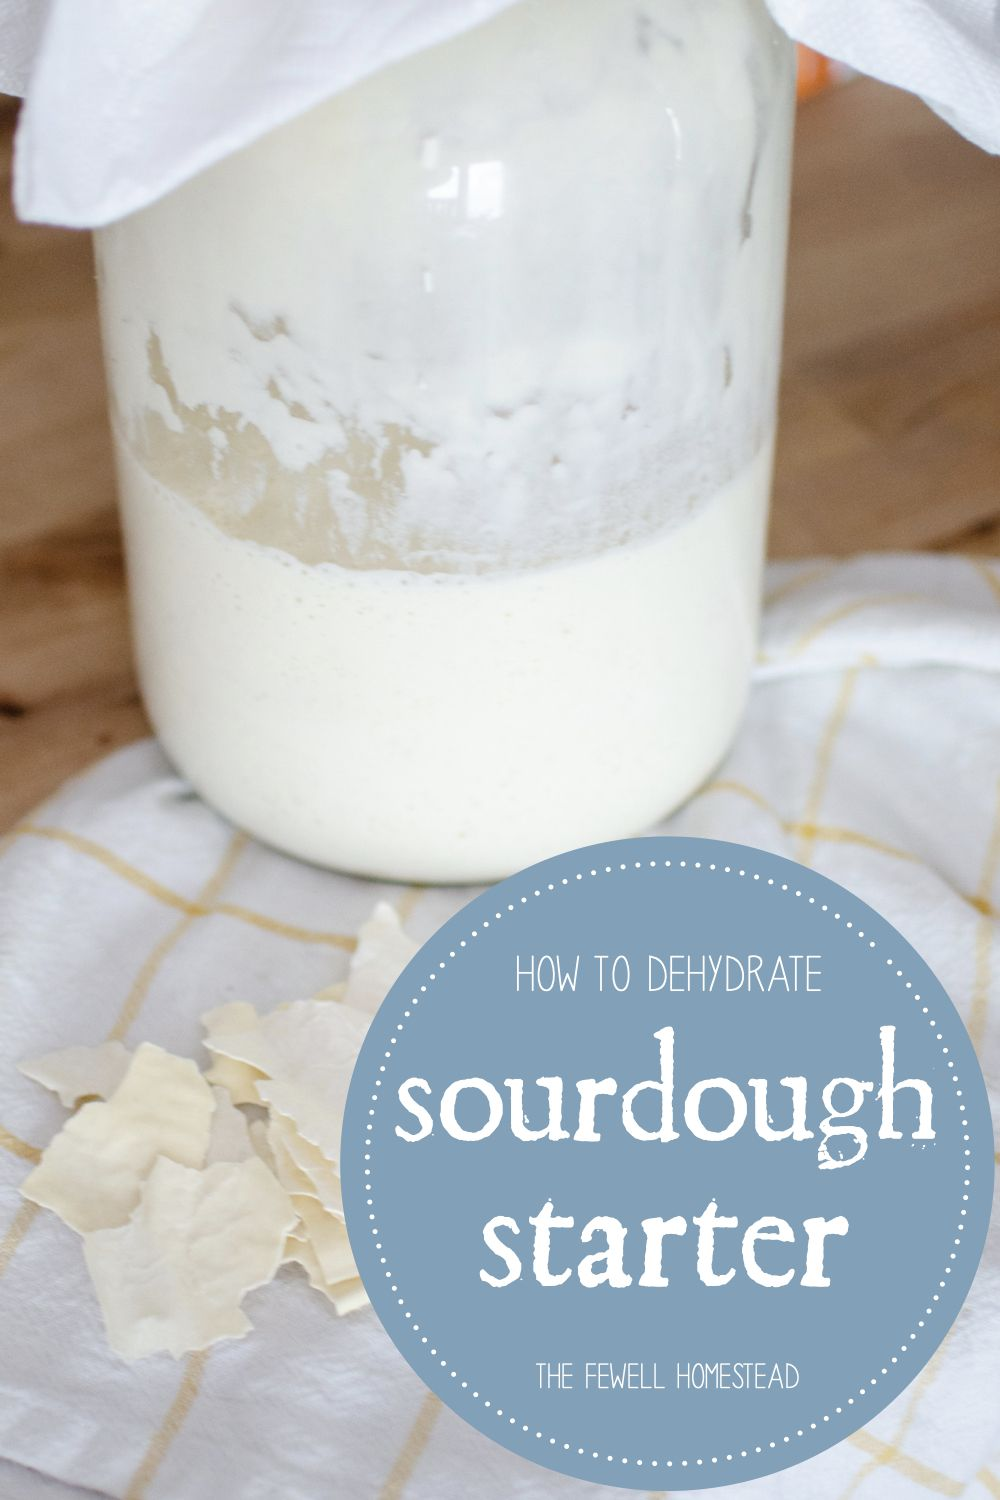 How to Make Dehydrated Sourdough Starter Amy K. Fewell